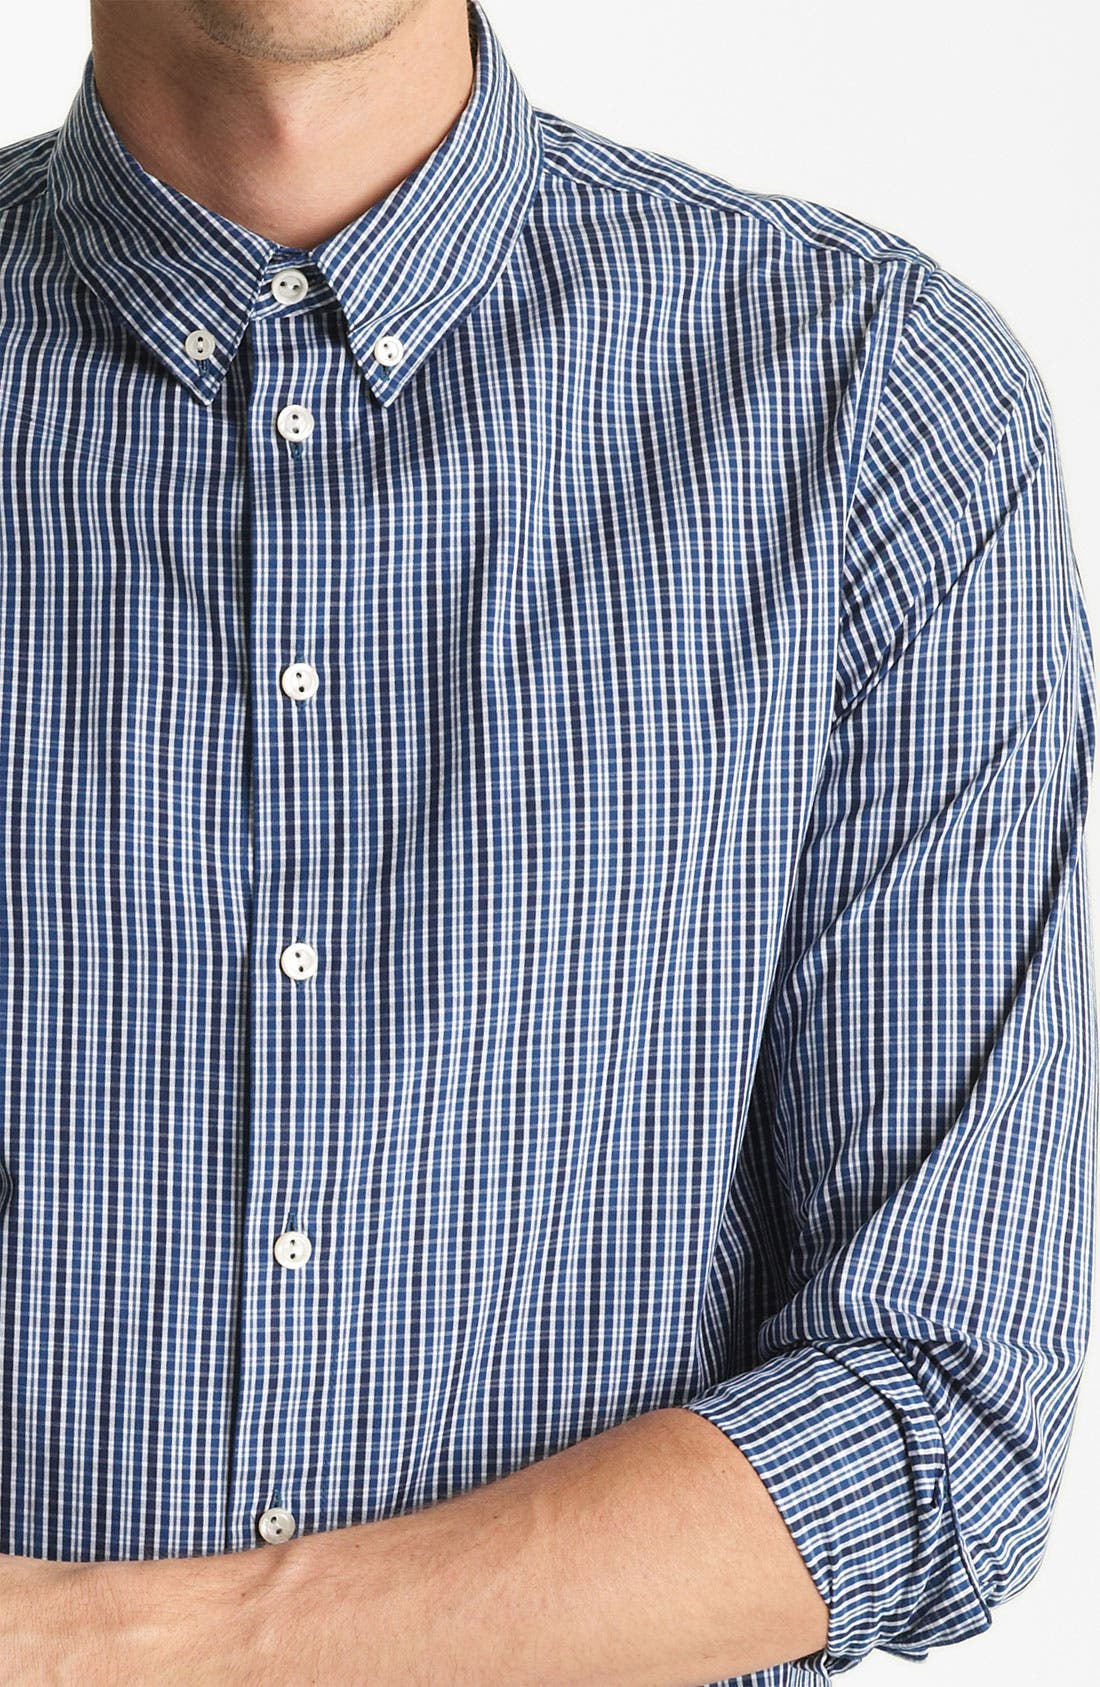 Alternate Image 3  - A.P.C. Plaid Cotton Shirt